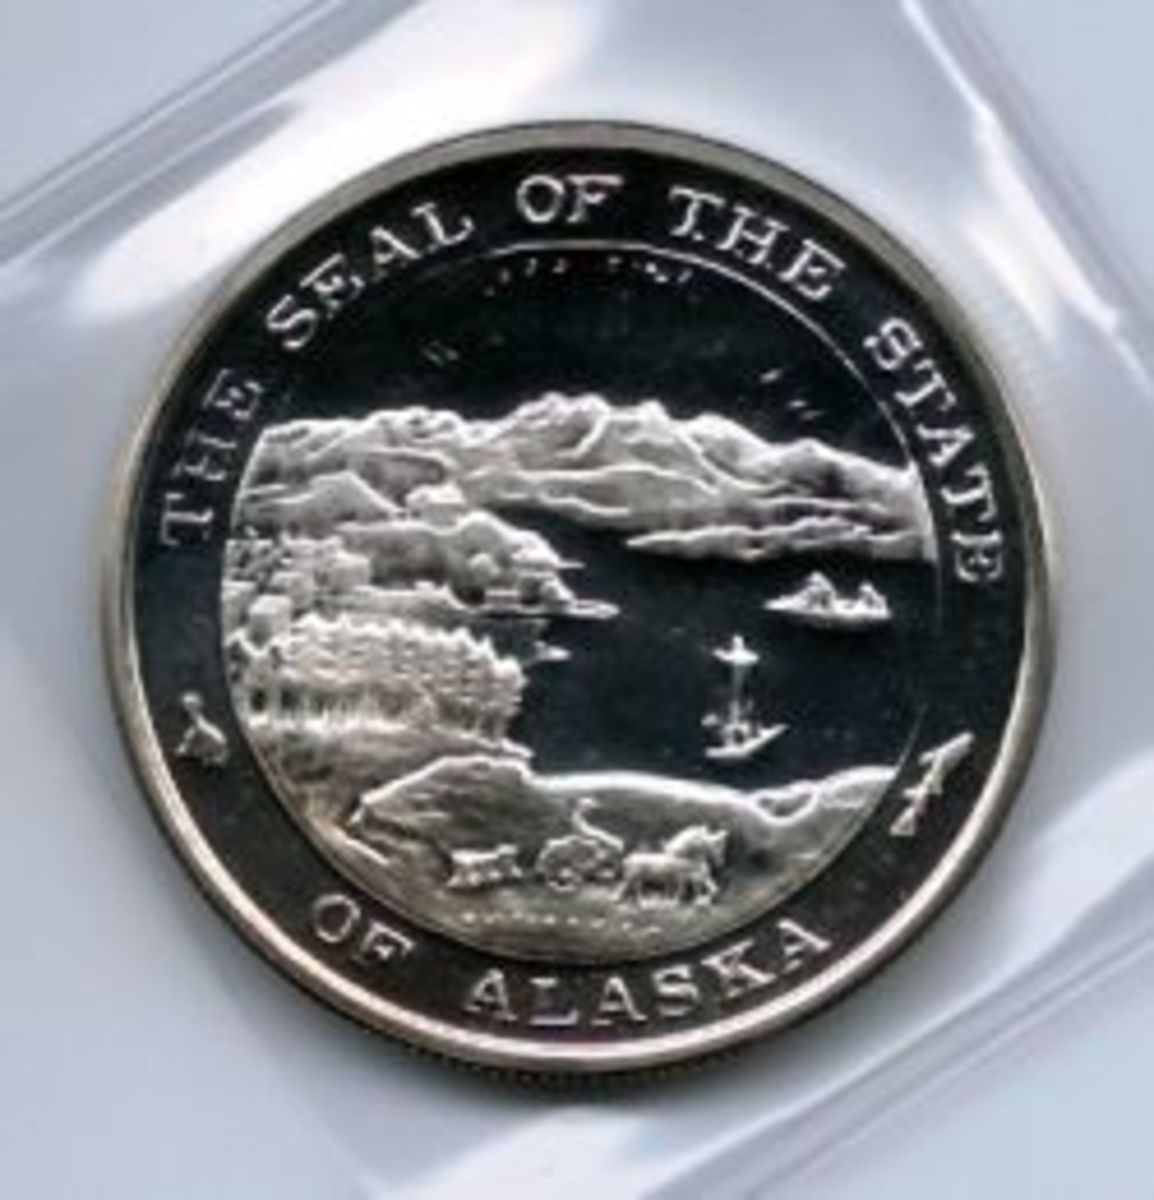 Official Alaska State Medallions